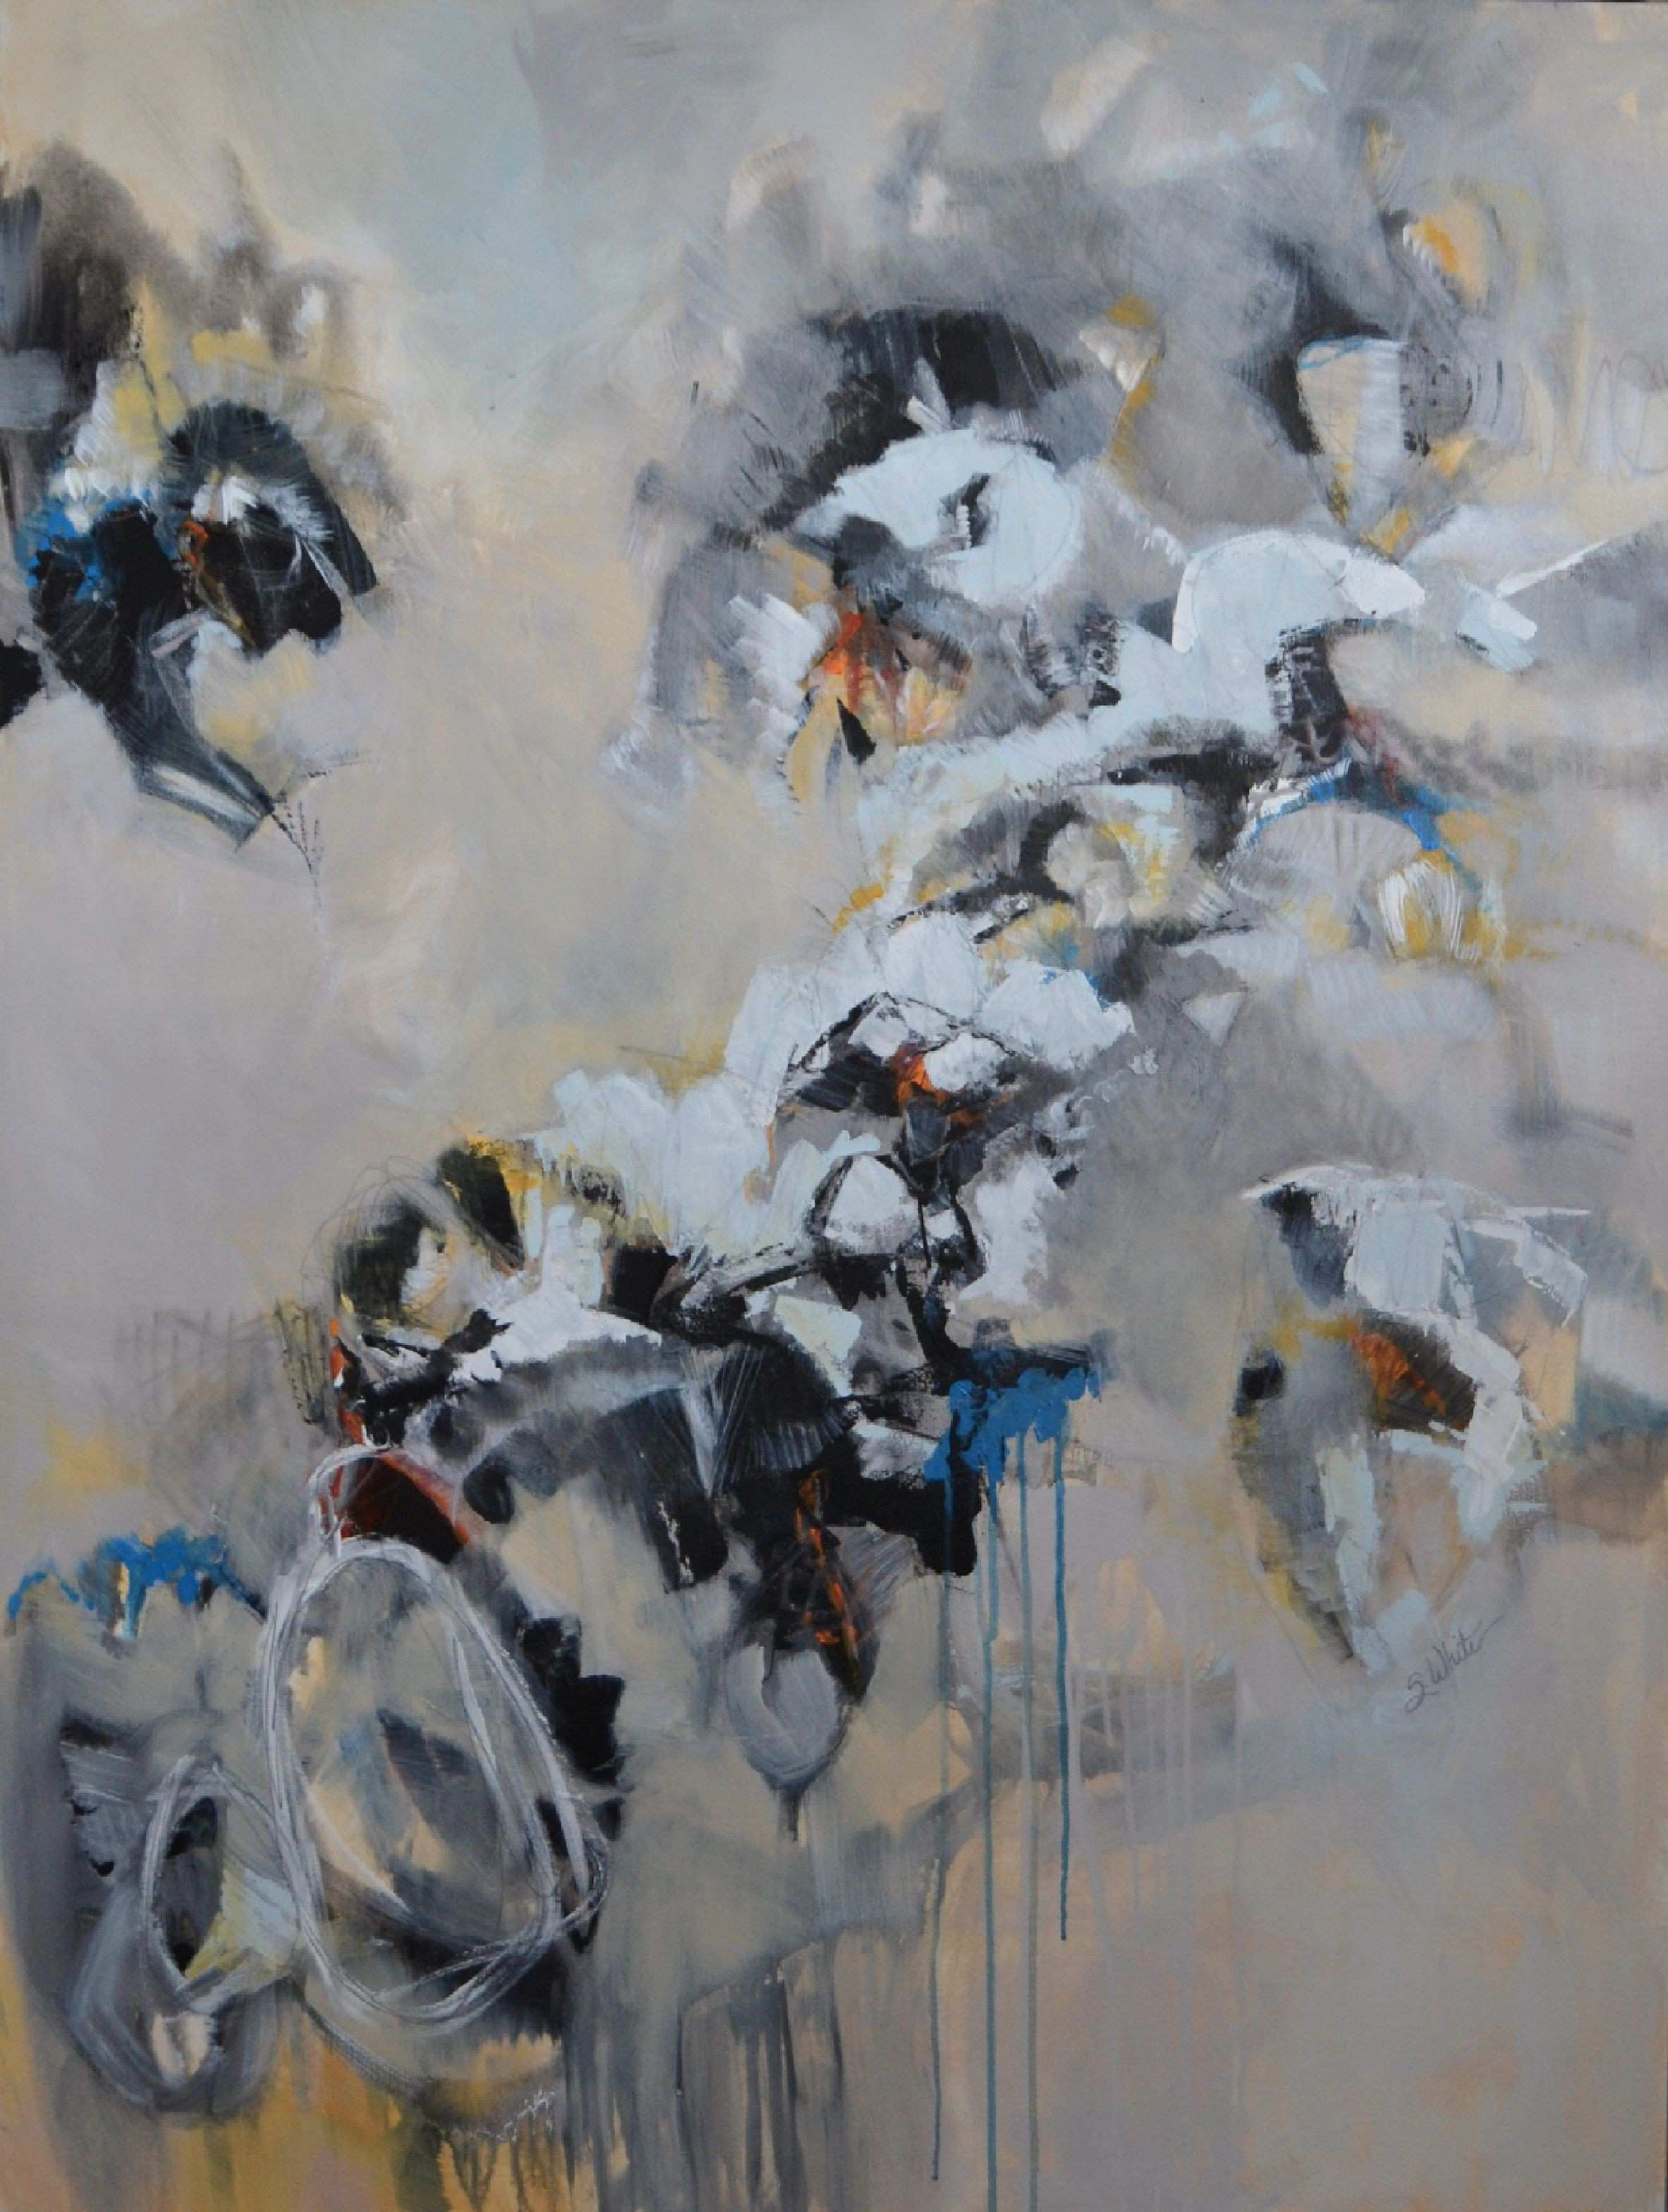 sallie white until we disappear to her in a dream 48x36 mixed